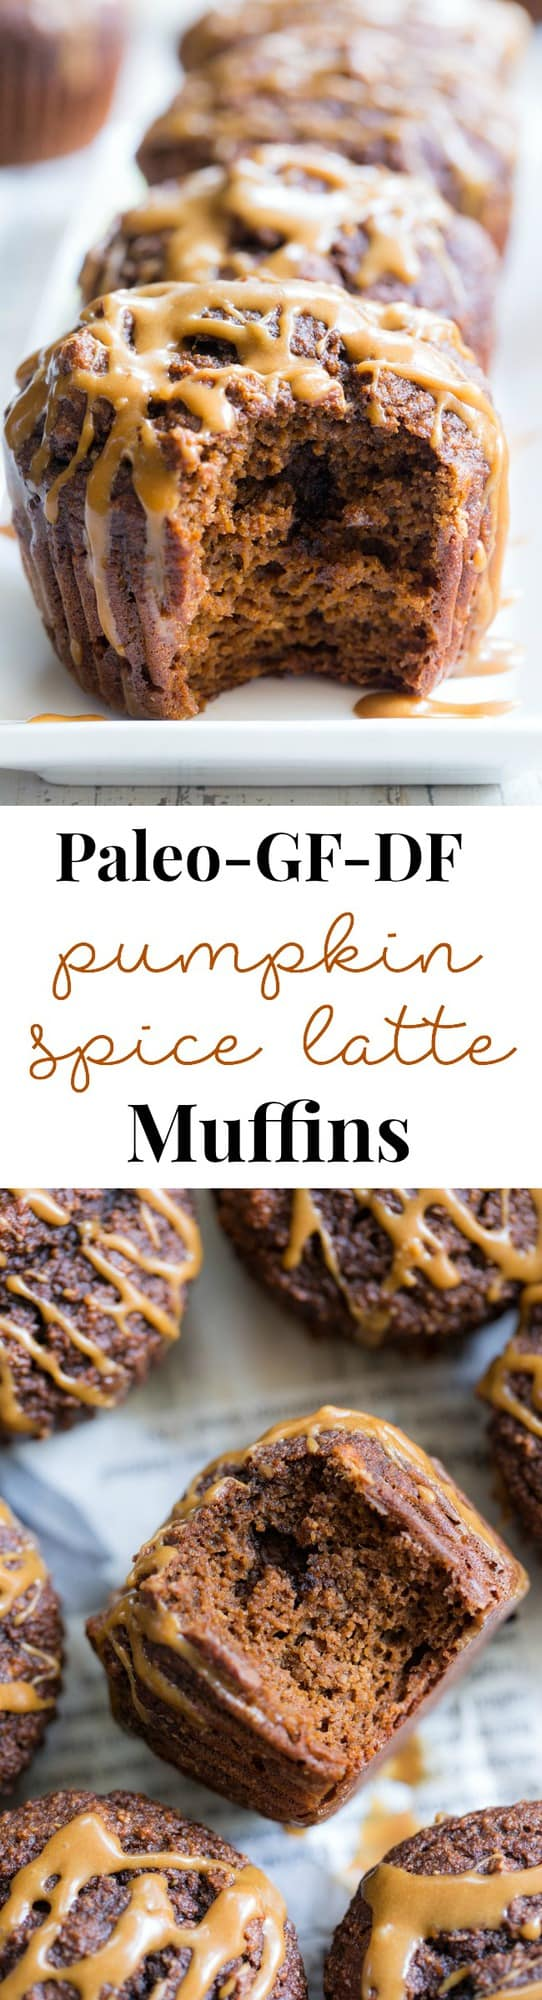 "These Pumpkin Spice Latte Muffins have everything you love about your favorite fall drink, in muffin form!  Fluffy, moist muffins packed with pumpkin pie spice and espresso powder drizzled with a dairy-free ""latte"" icing.  They're gluten-free, dairy free, paleo, and one of my favorite baking recipes this fall!   Paleo dessert. Paleo pumpkin recipes. Paleo baking. Paleo pumpkin muffins. Pumpkin muffins. Gluten free pumpkin muffins. Healthy pumpkin muffins."